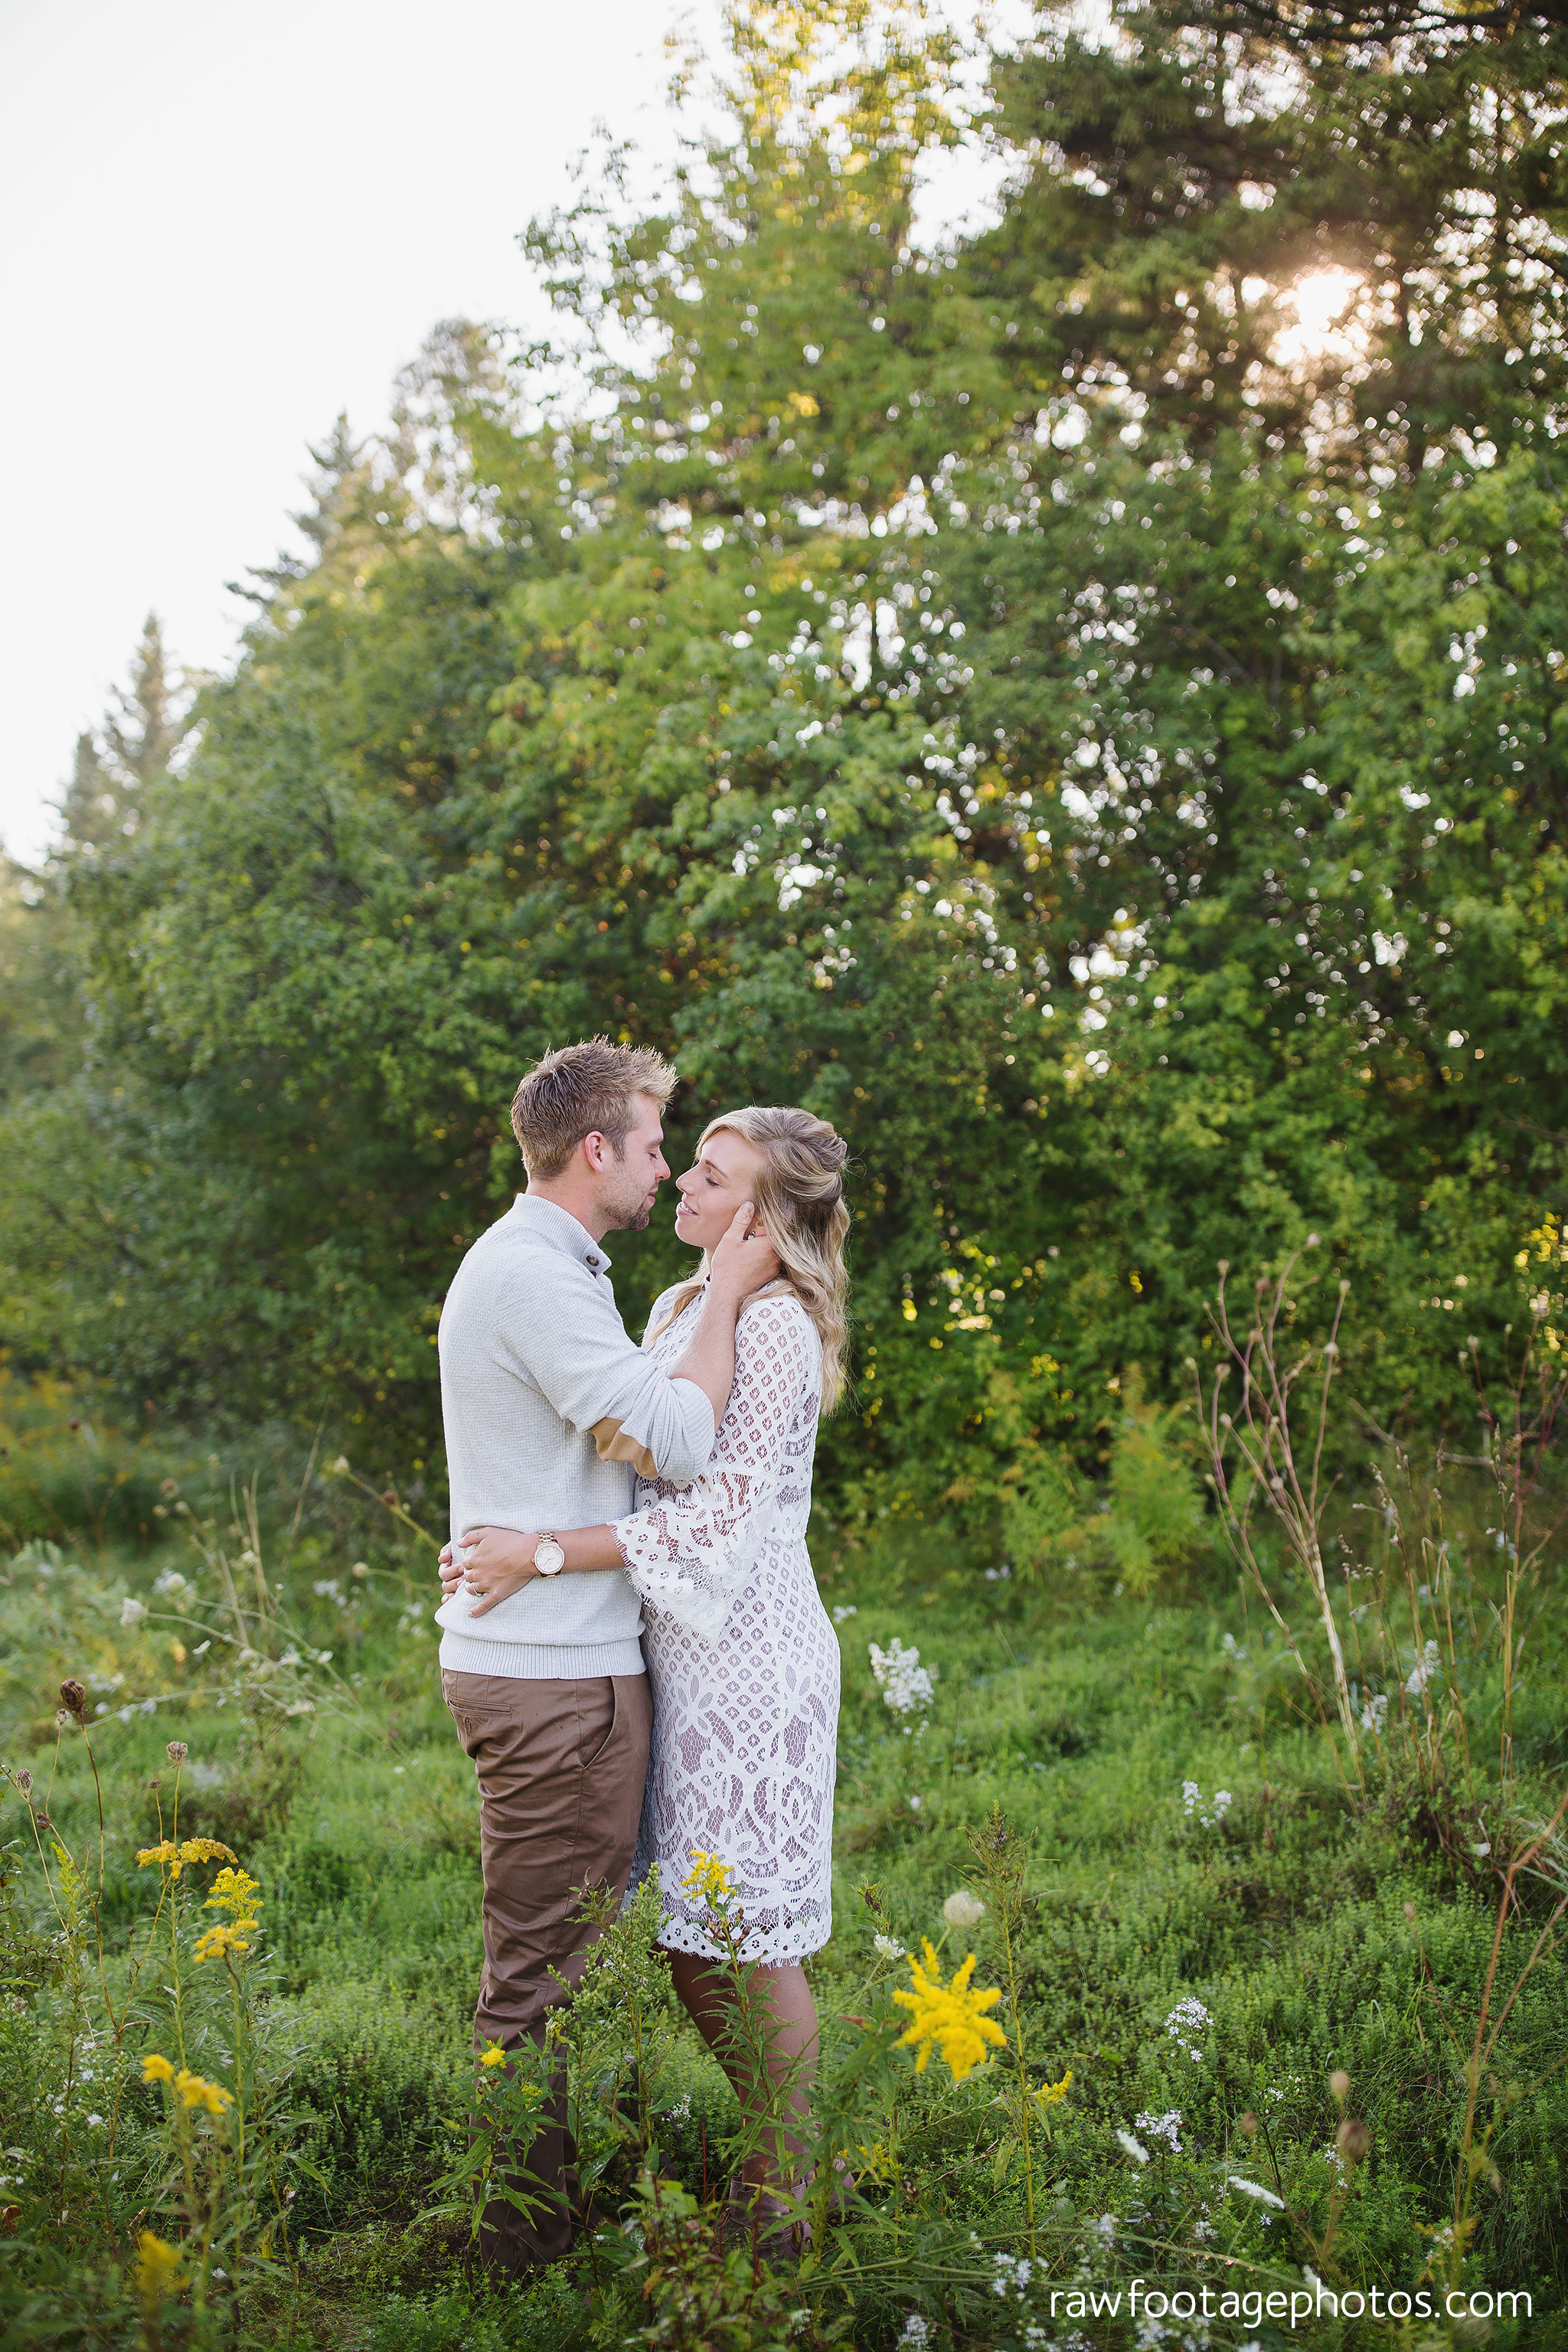 London_Ontario_Family_photographer-Fall_Minis-Woods-Forest-Nature-Candid-Lifestyle-Raw_Footage_Photography003.jpg